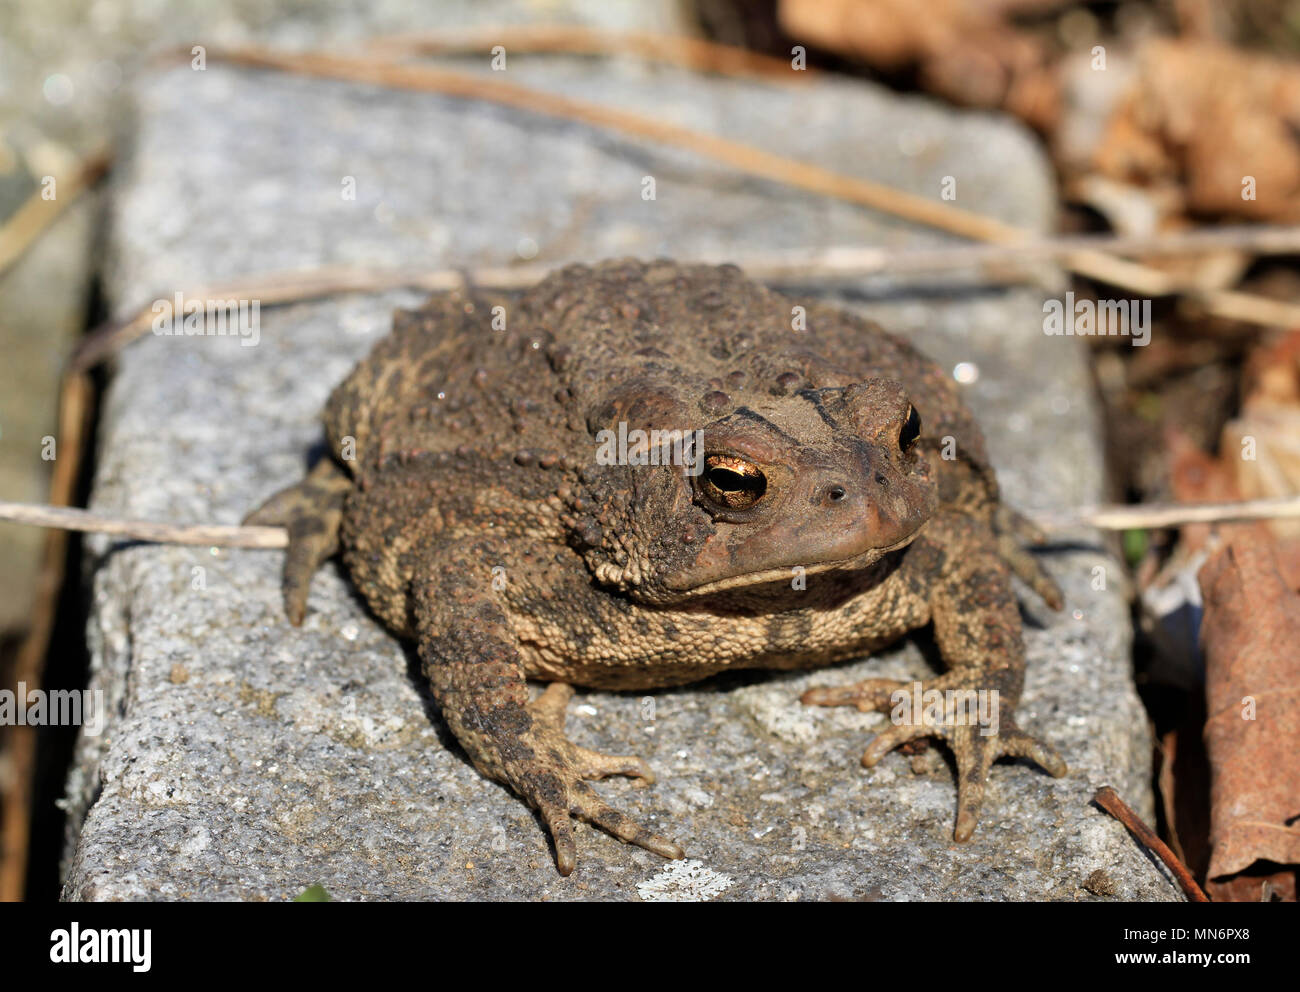 Close-up of a juvenile Fowler's toad (Anaxyrus fowleri) lounging on a garden stone beside leaf litter in spring Stock Photo